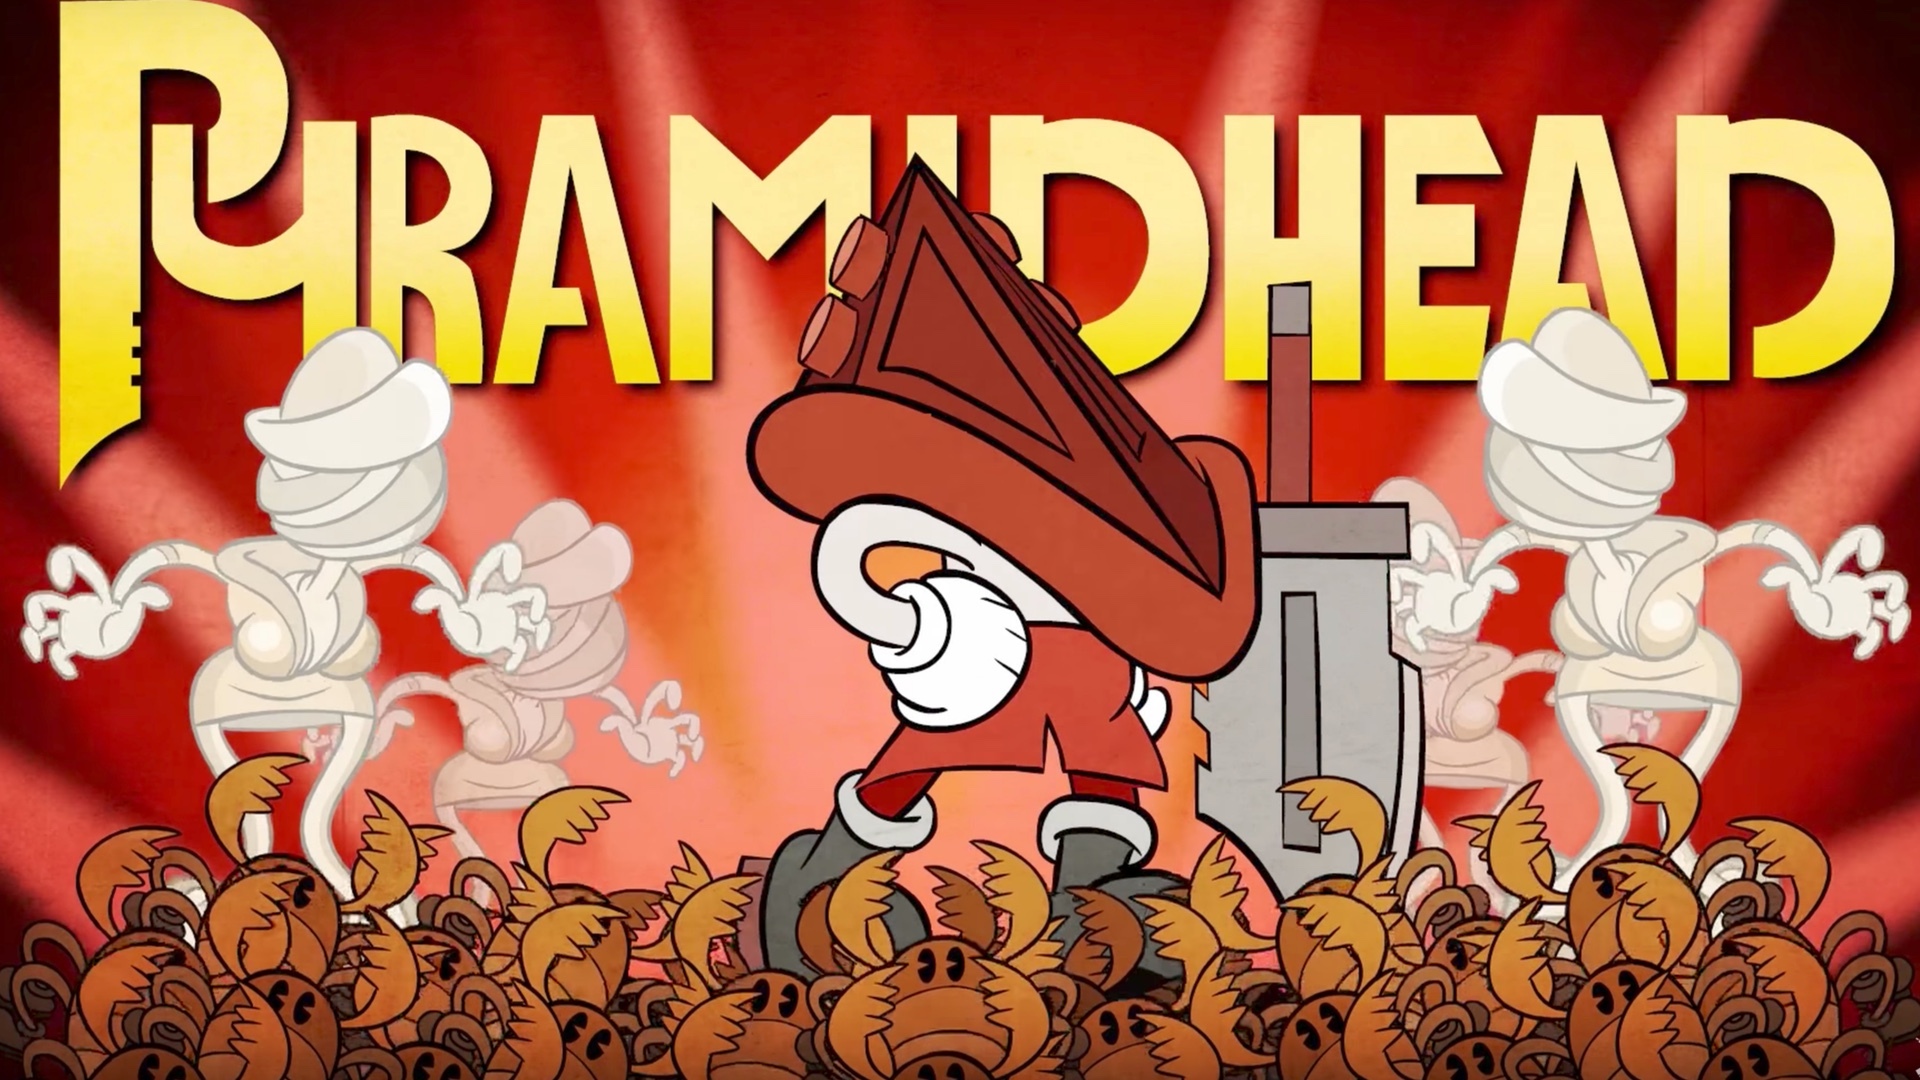 Cuphead Cosplays As Pyramid Head In This Awesome Animated Silent